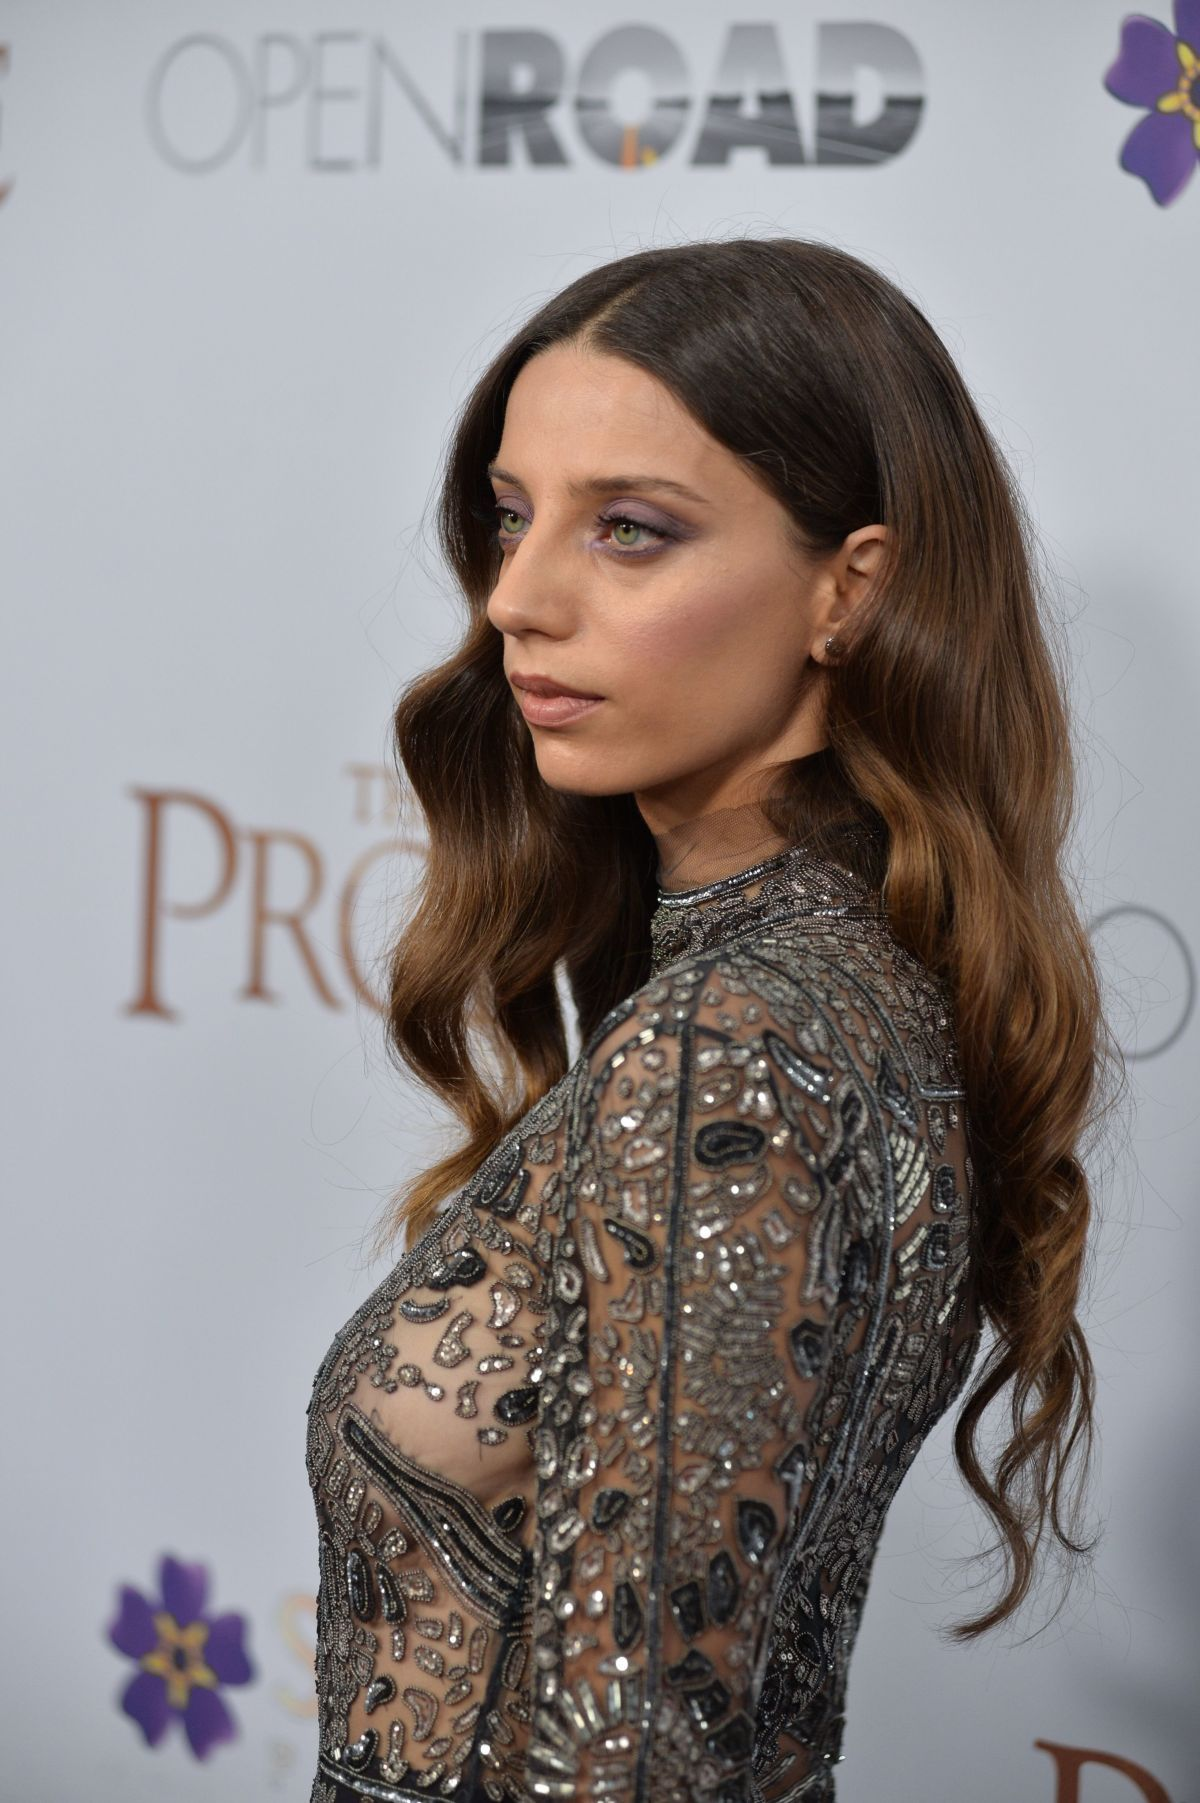 Celebrity Angela Sarafyan naked (65 foto and video), Pussy, Paparazzi, Selfie, cameltoe 2019